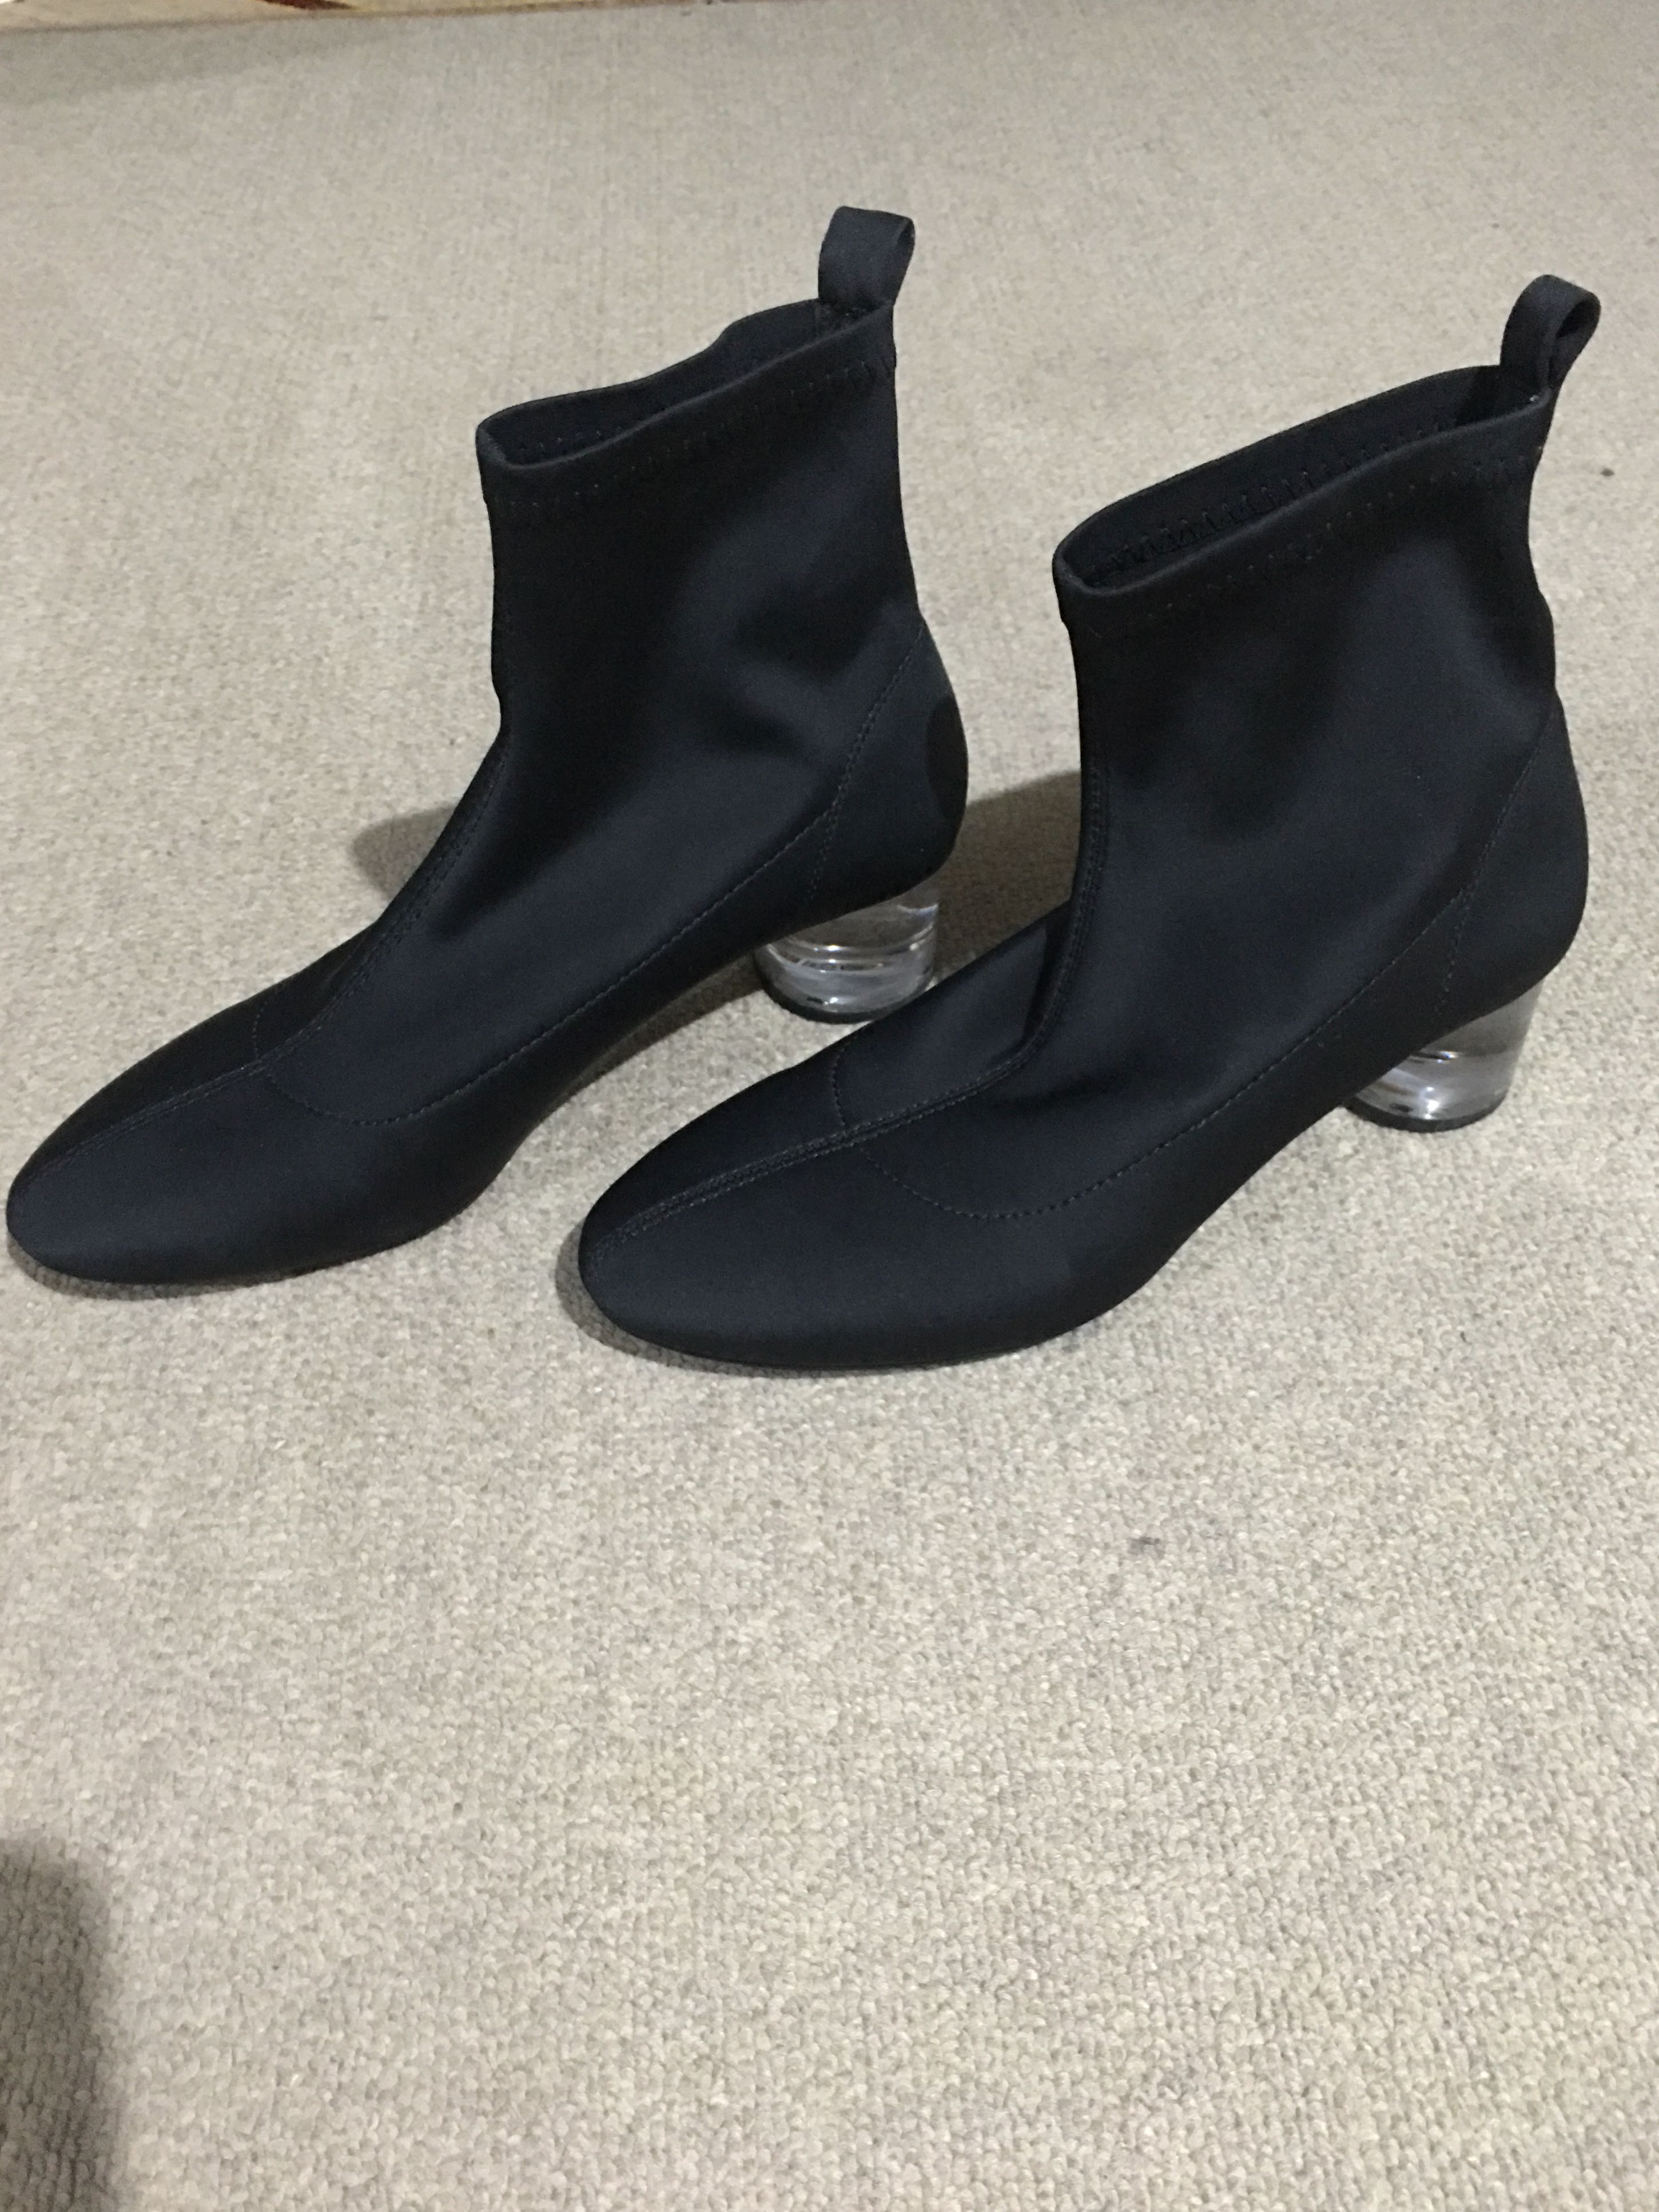 4c16102040 zara black comfy boots with methacrylate clear heel size us 7, Women's  Fashion, Shoes on Carousell